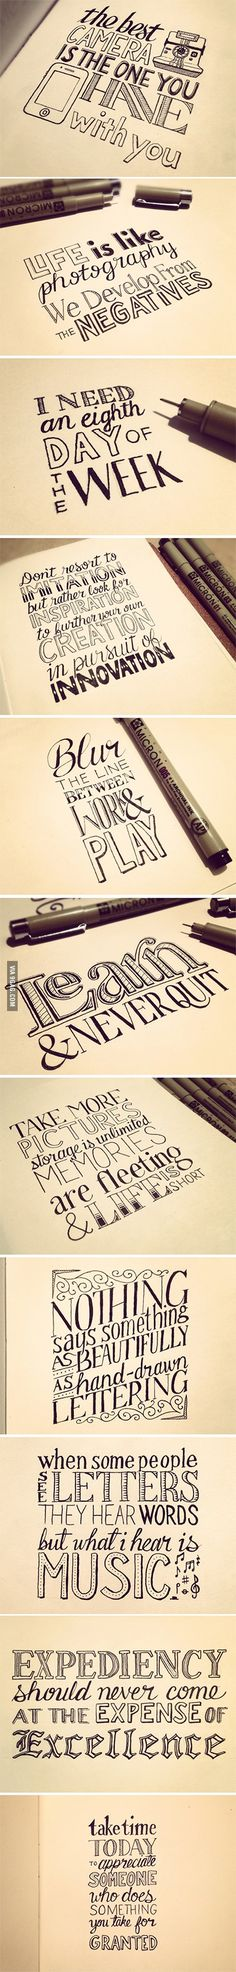 Cool Typography Quotes - 9GAG